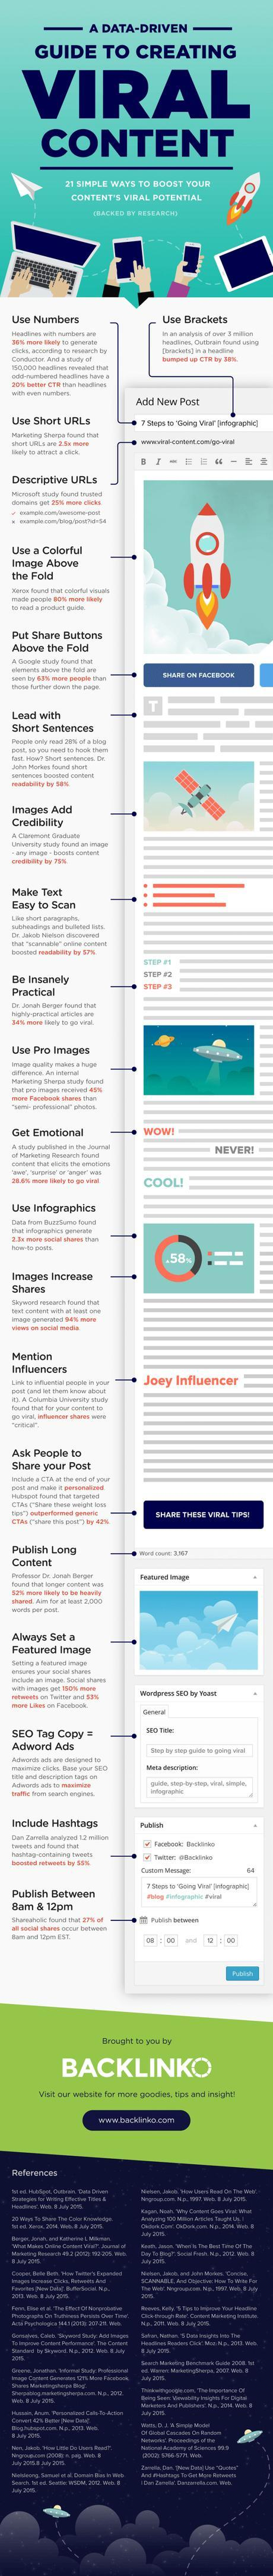 21 Ways To Create Traffic Boosting Viral Content, Backed By Research [Infographic]